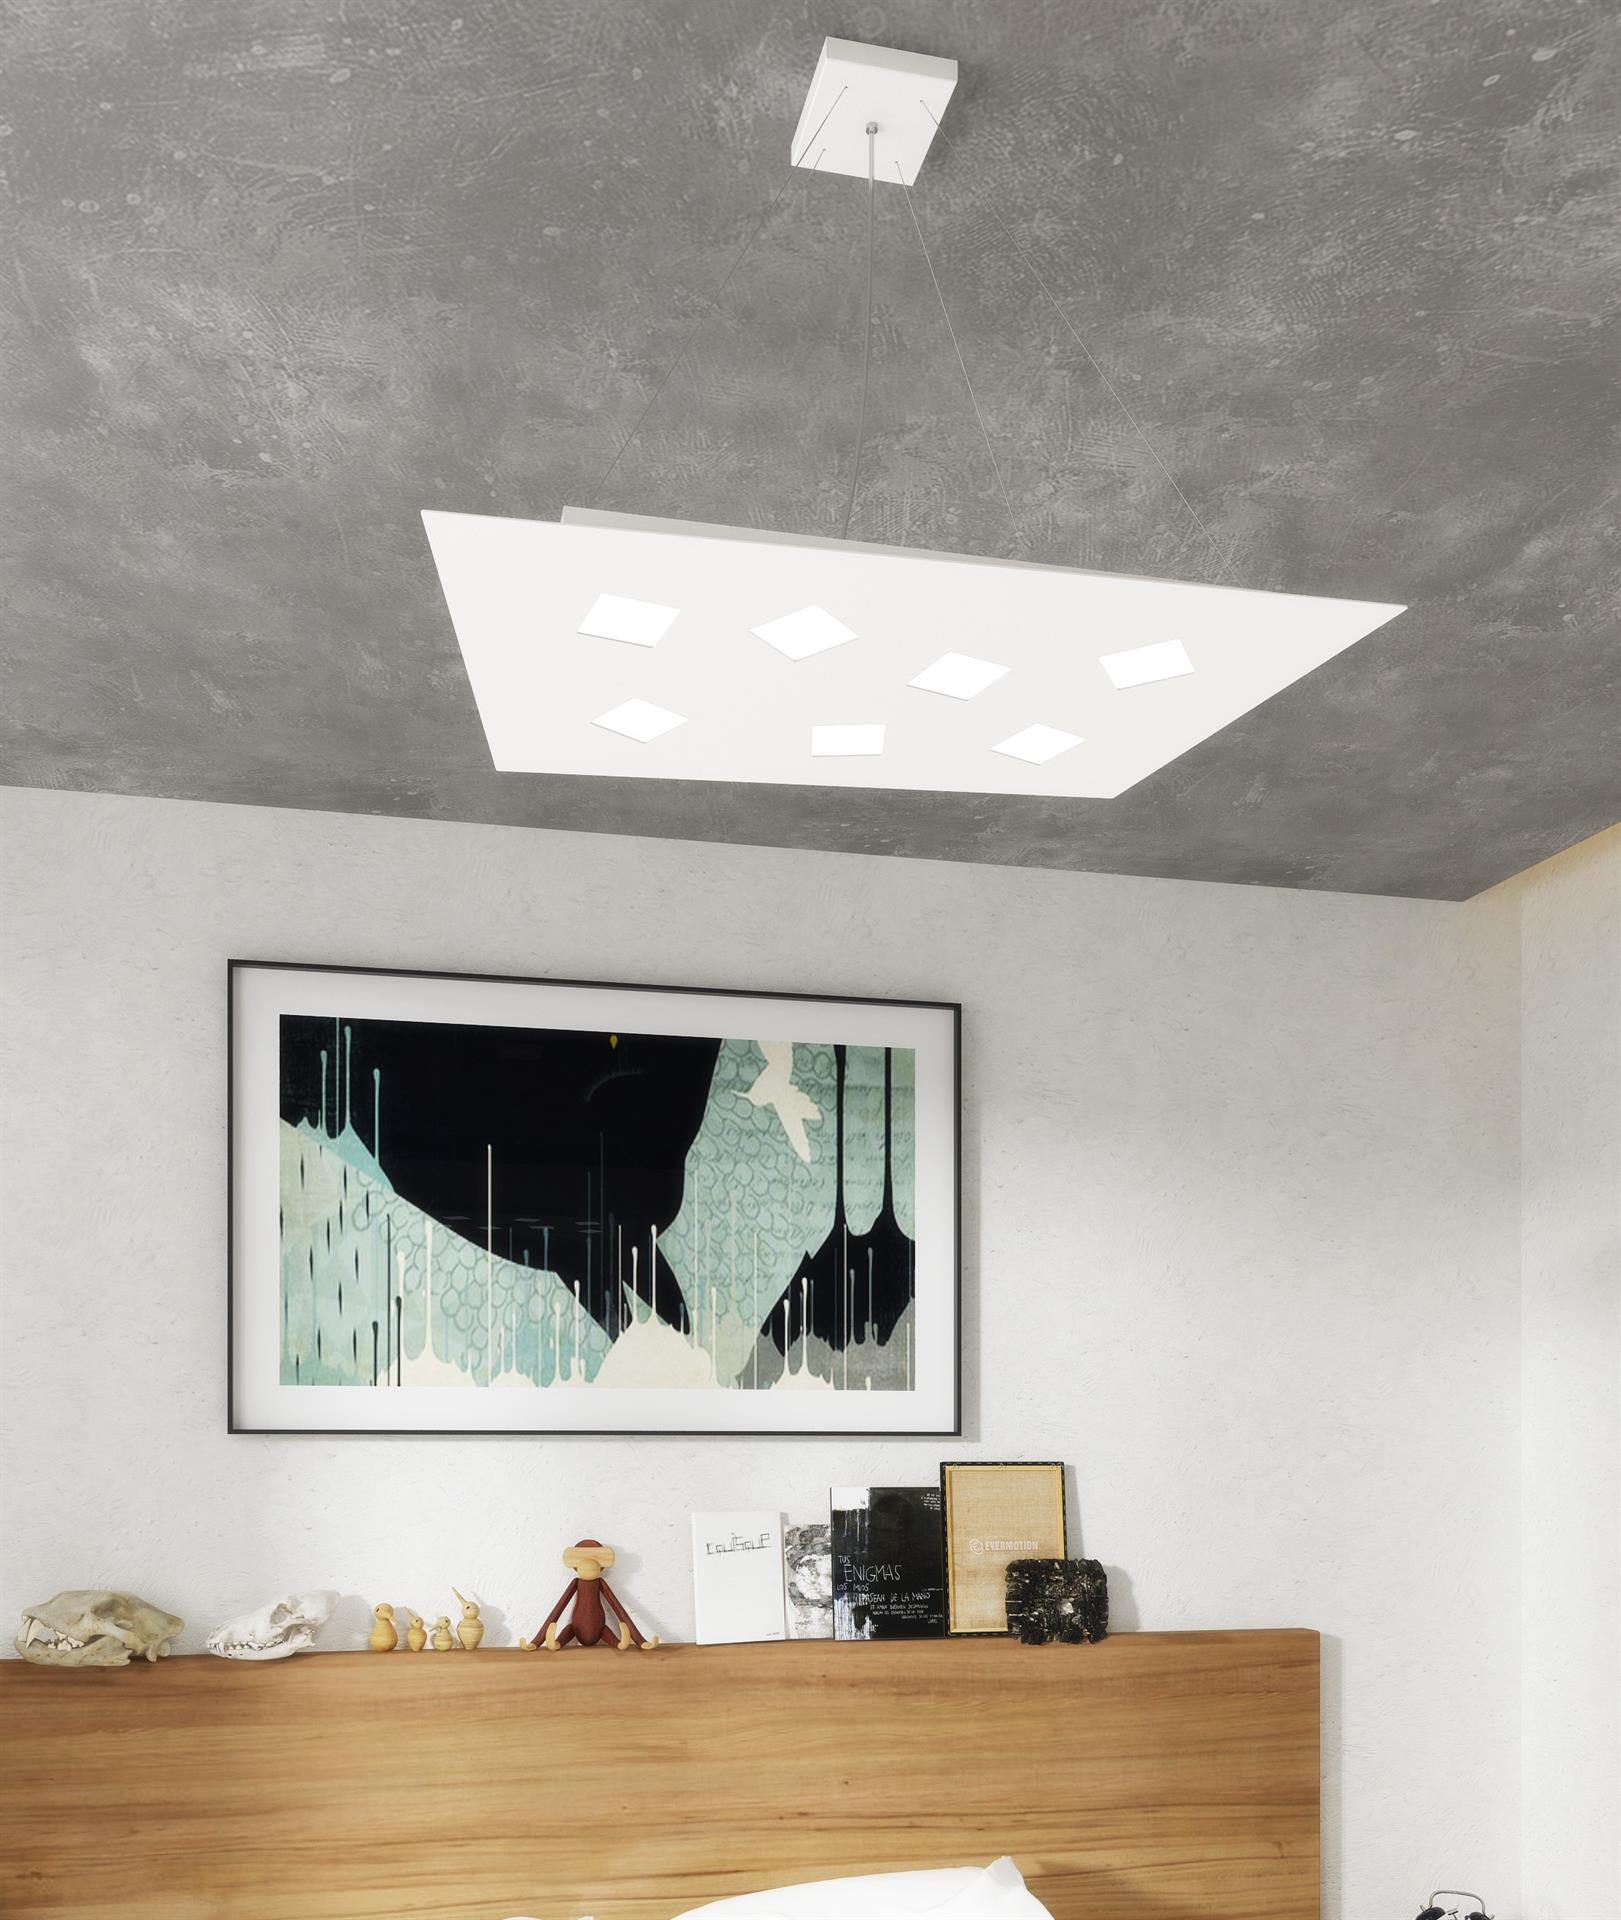 TOP LIGHT NOTE LAMPADARIO LED GRIGIO 4+2 LUCI LUCE UP&DOWN DA CUCINA